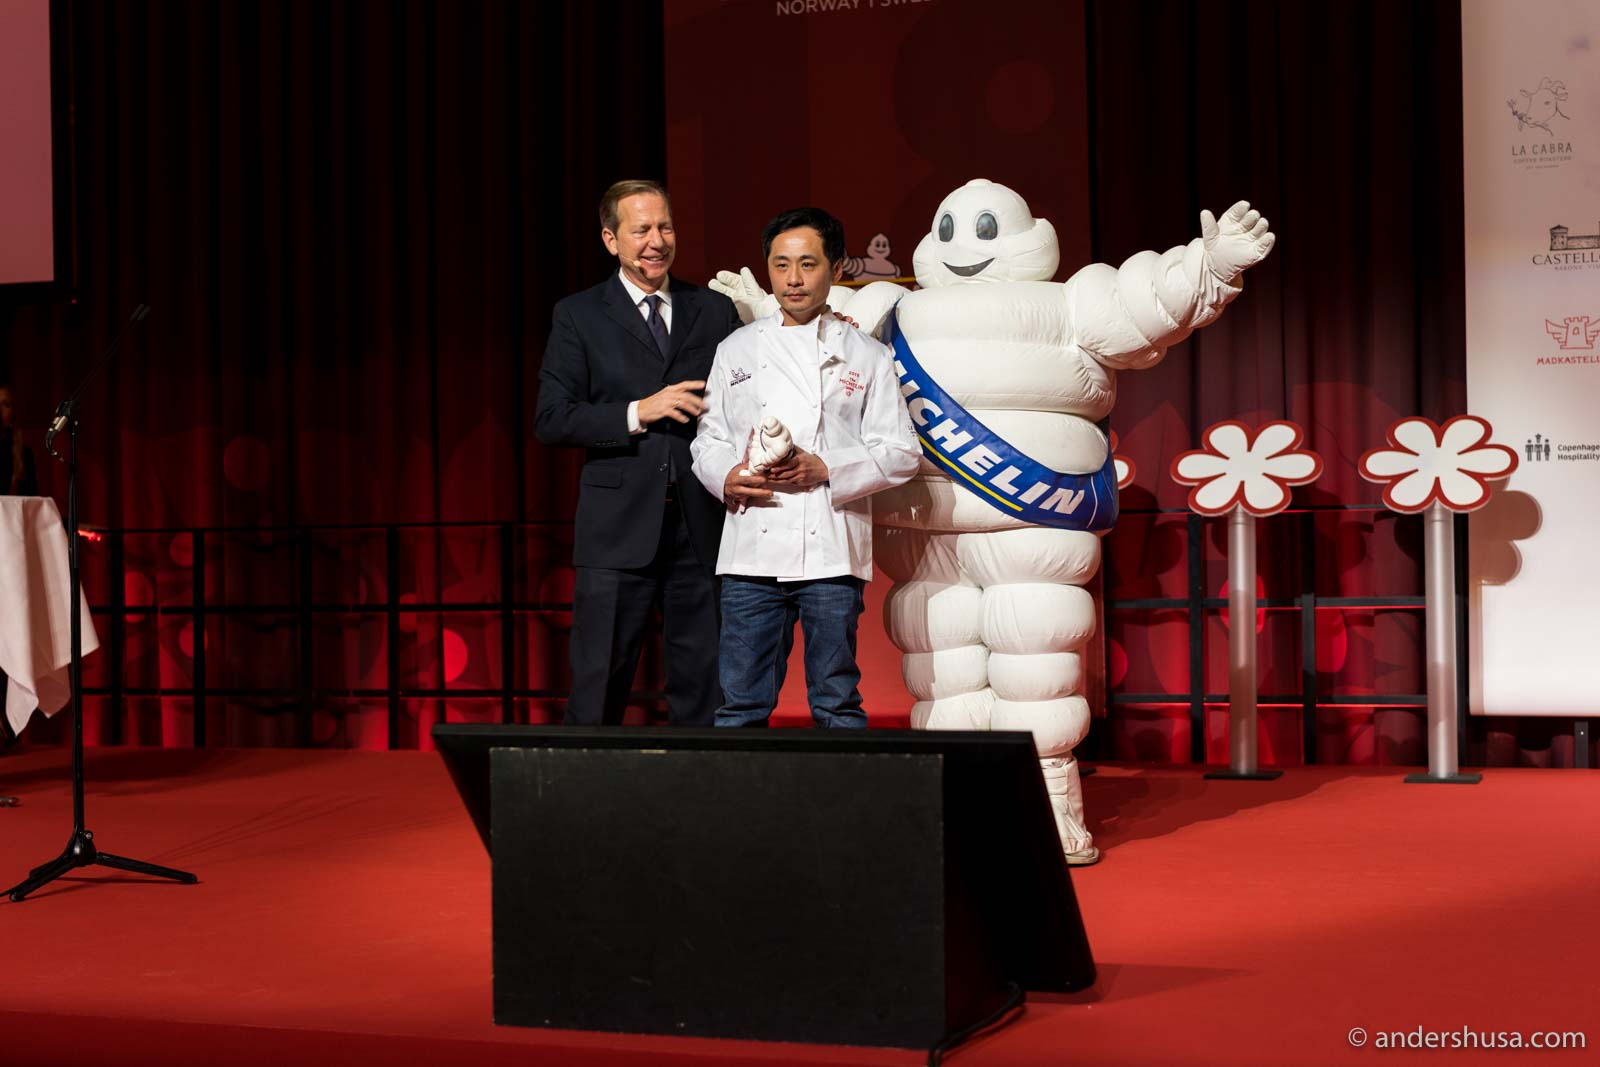 Björn Svensson accepts his third-in-a-row Michelin stars for restaurant Galt in Oslo